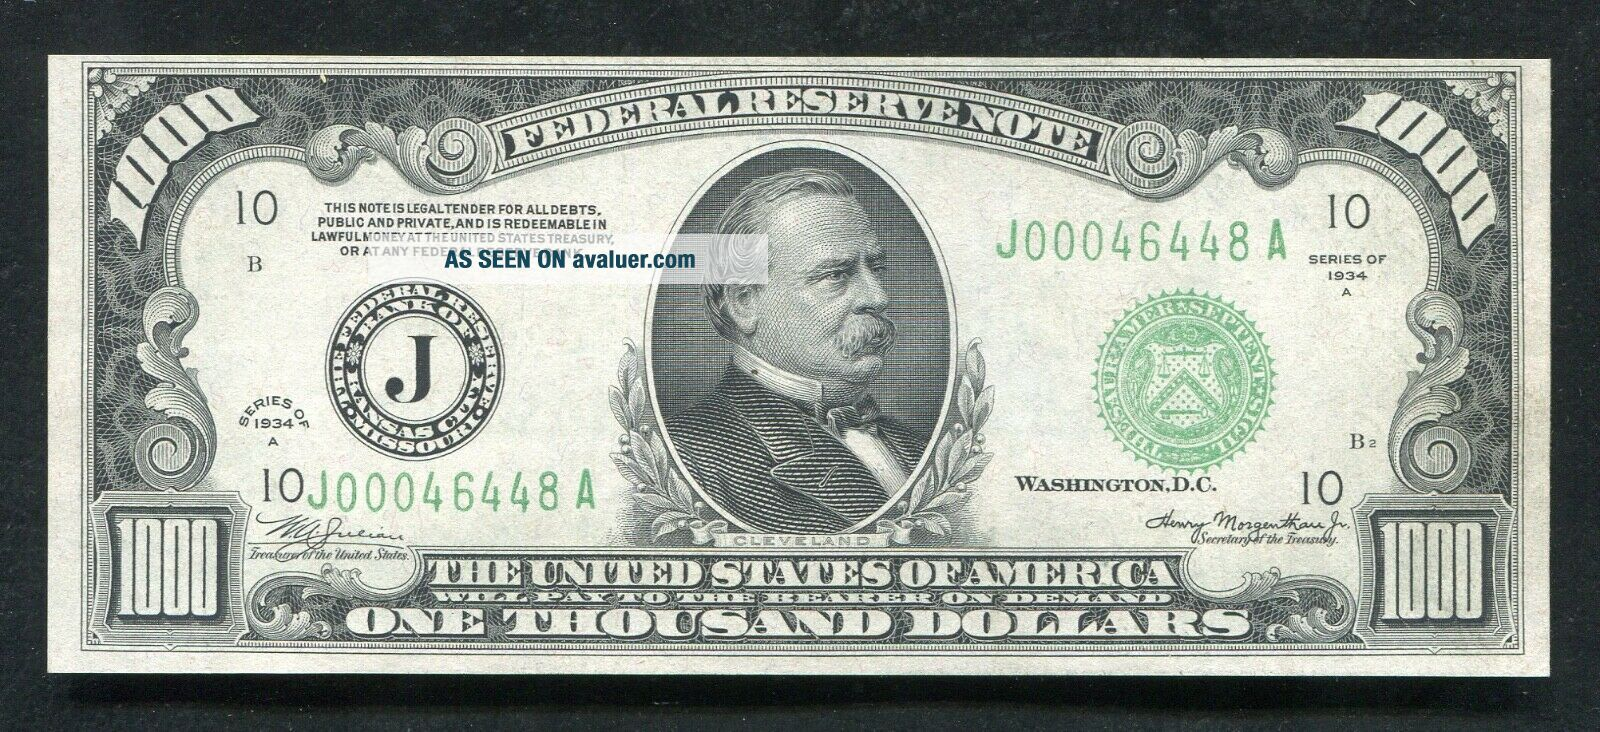 FR.  2212 - J 1934 - A $1,  000 ONE THOUSAND DOLLARS FRN KANSAS CITY,  MO UNCIRCULATED